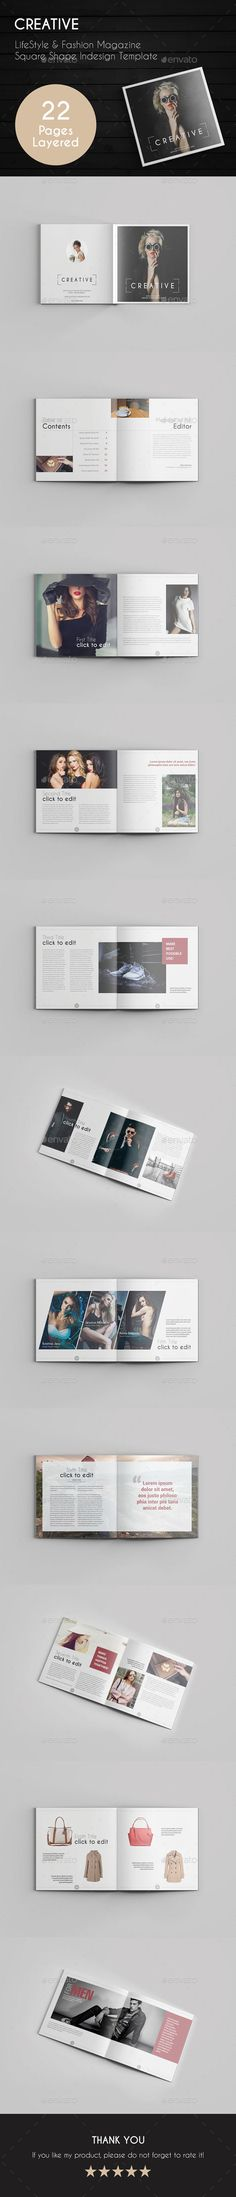 Creative Magazine Template  — InDesign Template #print #stylish • Download ➝ https://graphicriver.net/item/creative-magazine-template/18033438?ref=pxcr